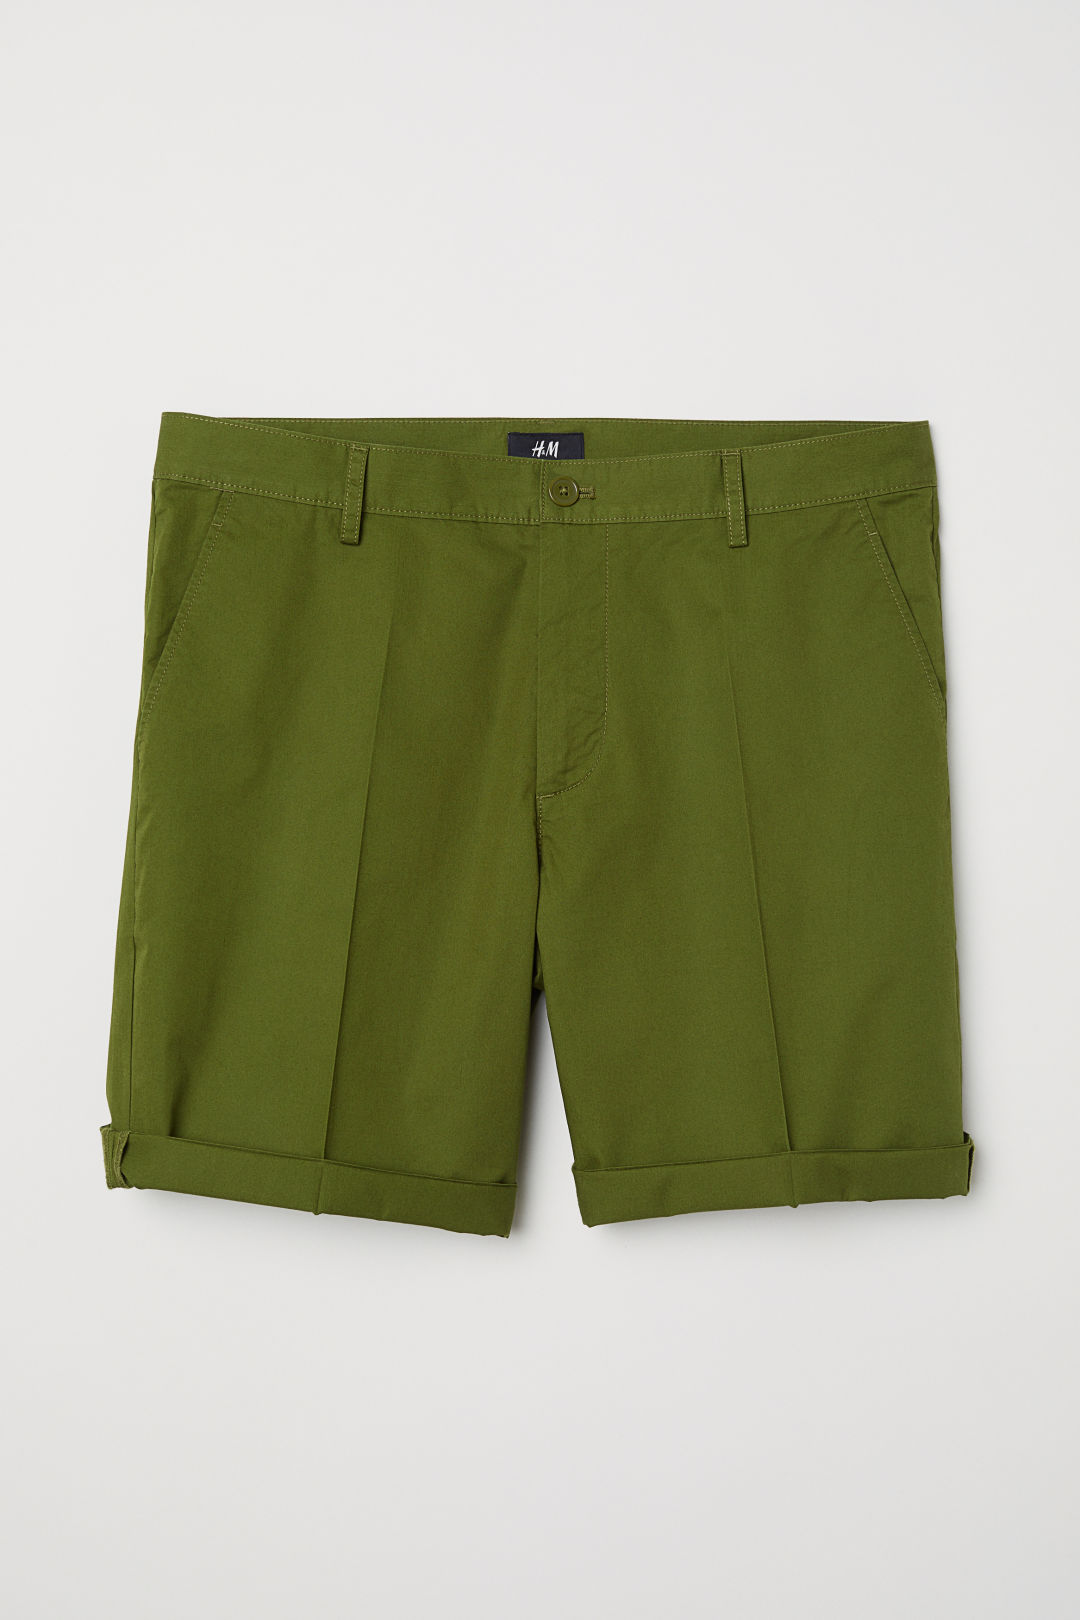 HM Green Chino Shorts.jpeg